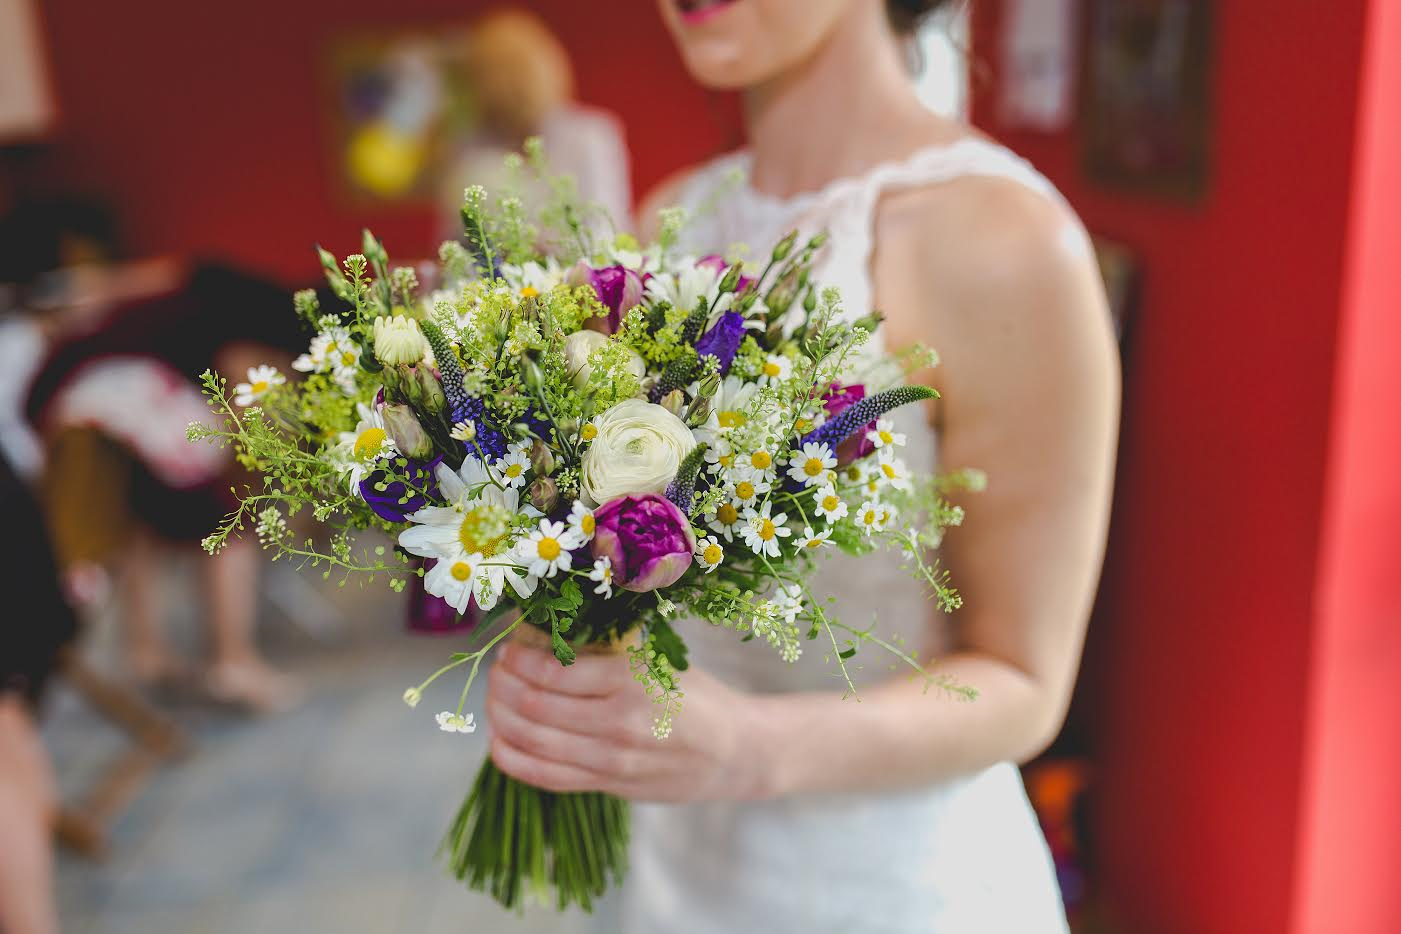 Bridal bouquet with Tulips, Daisies, Thalaspi, Veronica & Lisianthus